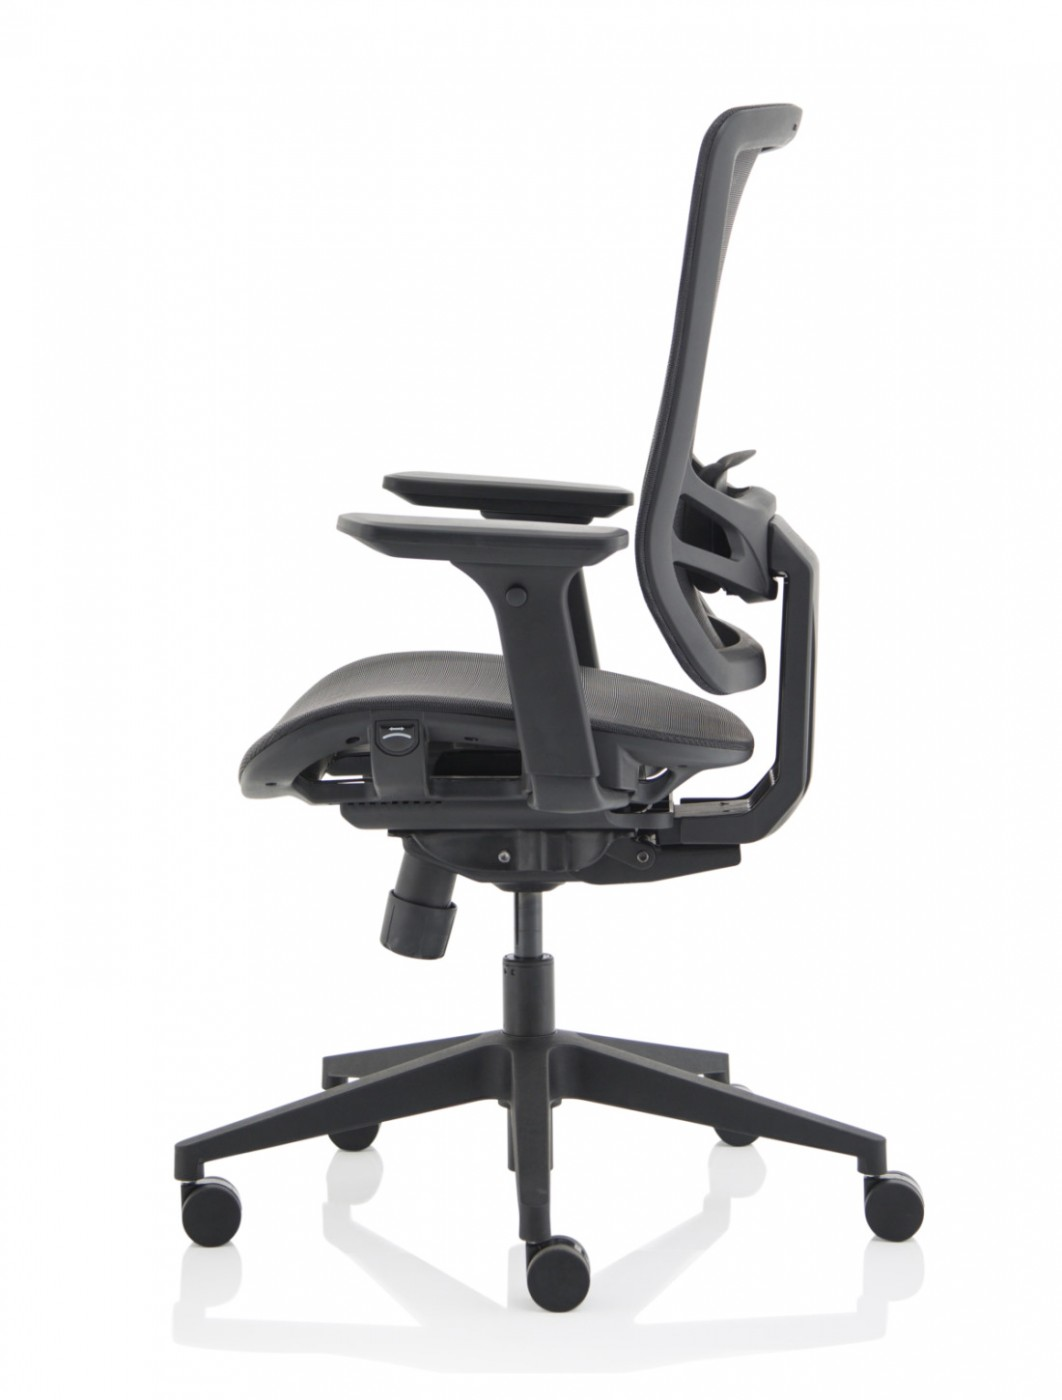 Mesh Office Chair Black Ergo Twist Chair OP000253 by Dynamic